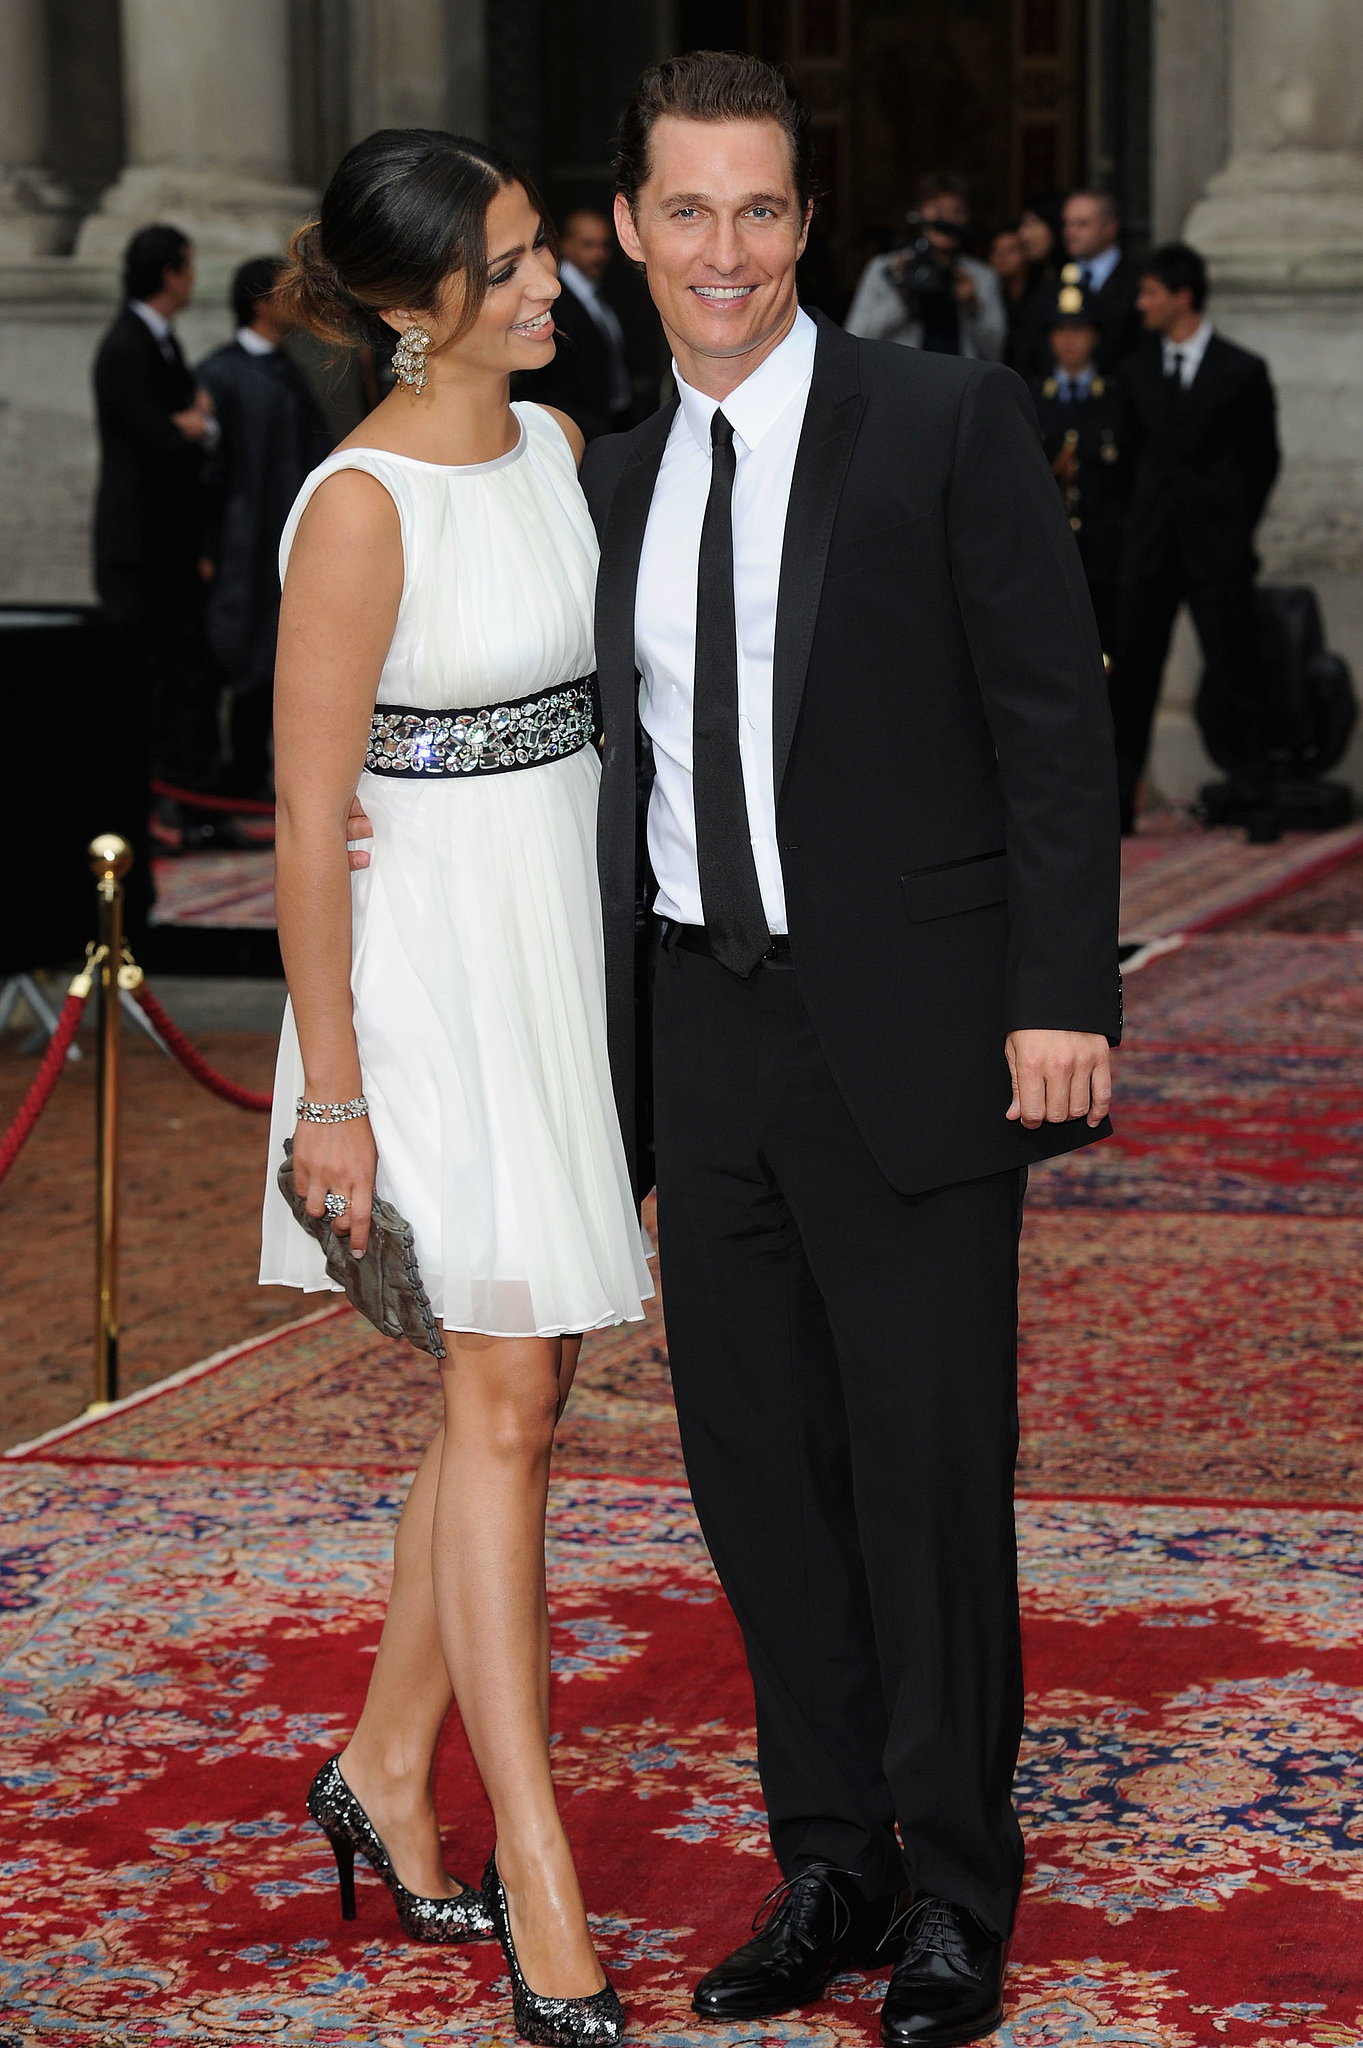 The duo got fashionable for a Dolce & Gabbana event during Milan Fashion Week in June 2010.